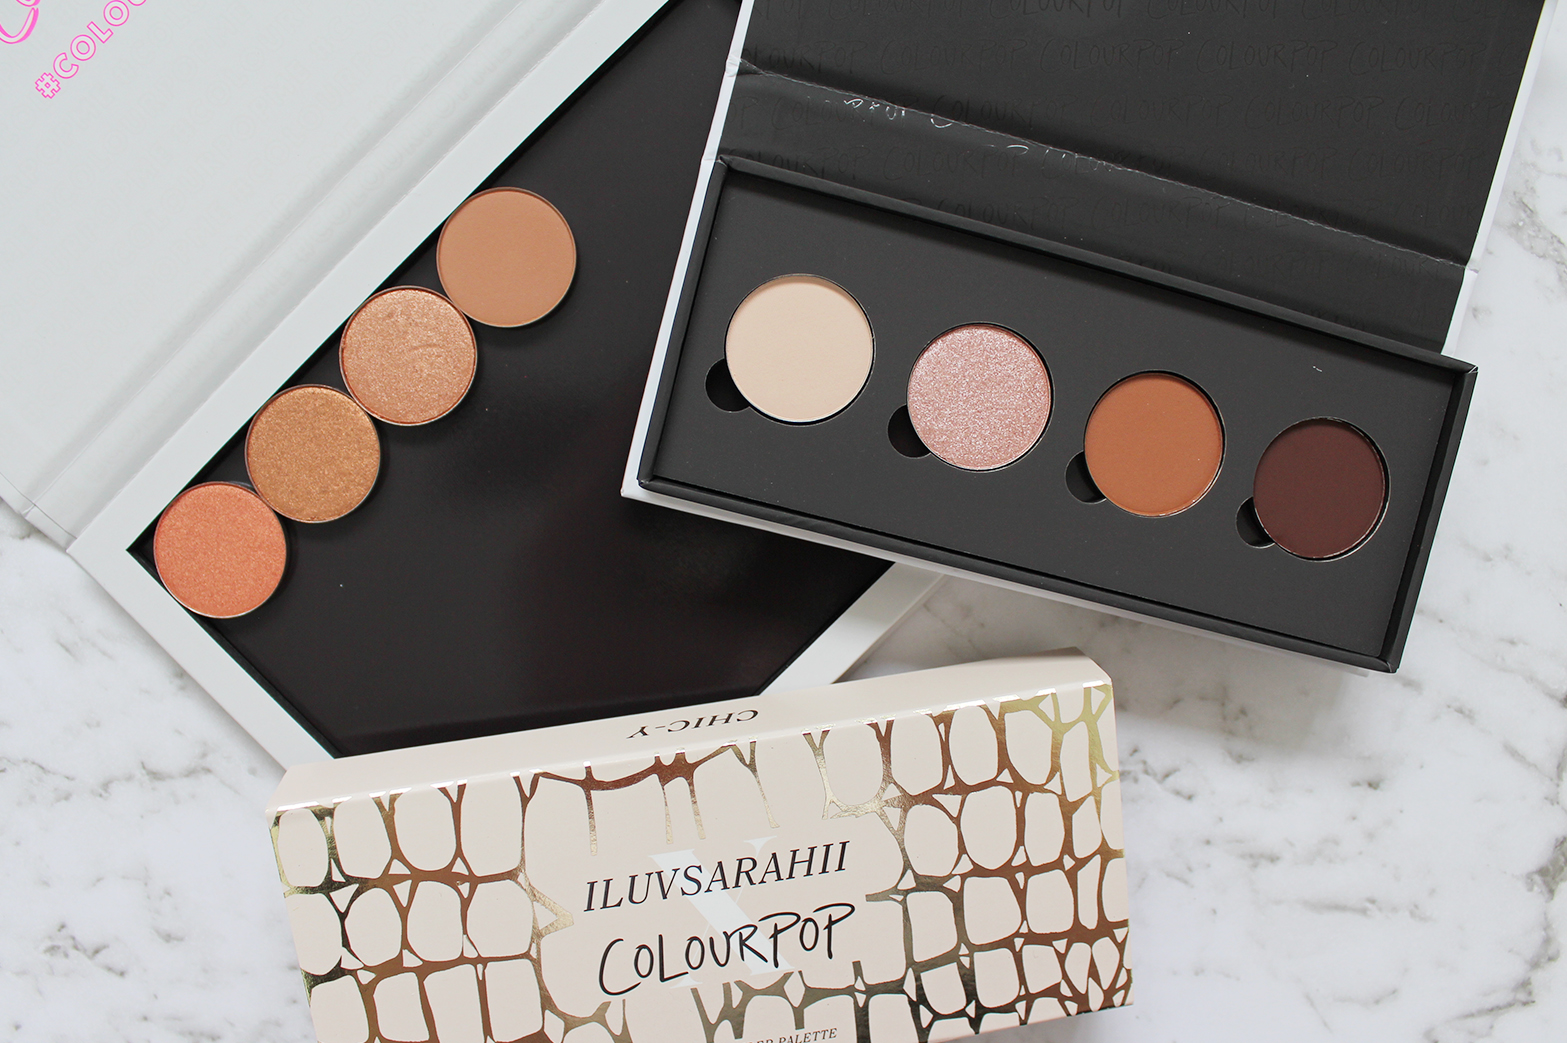 COLOURPOP | Haul - 5 Million Followers Freebies + More - CassandraMyee